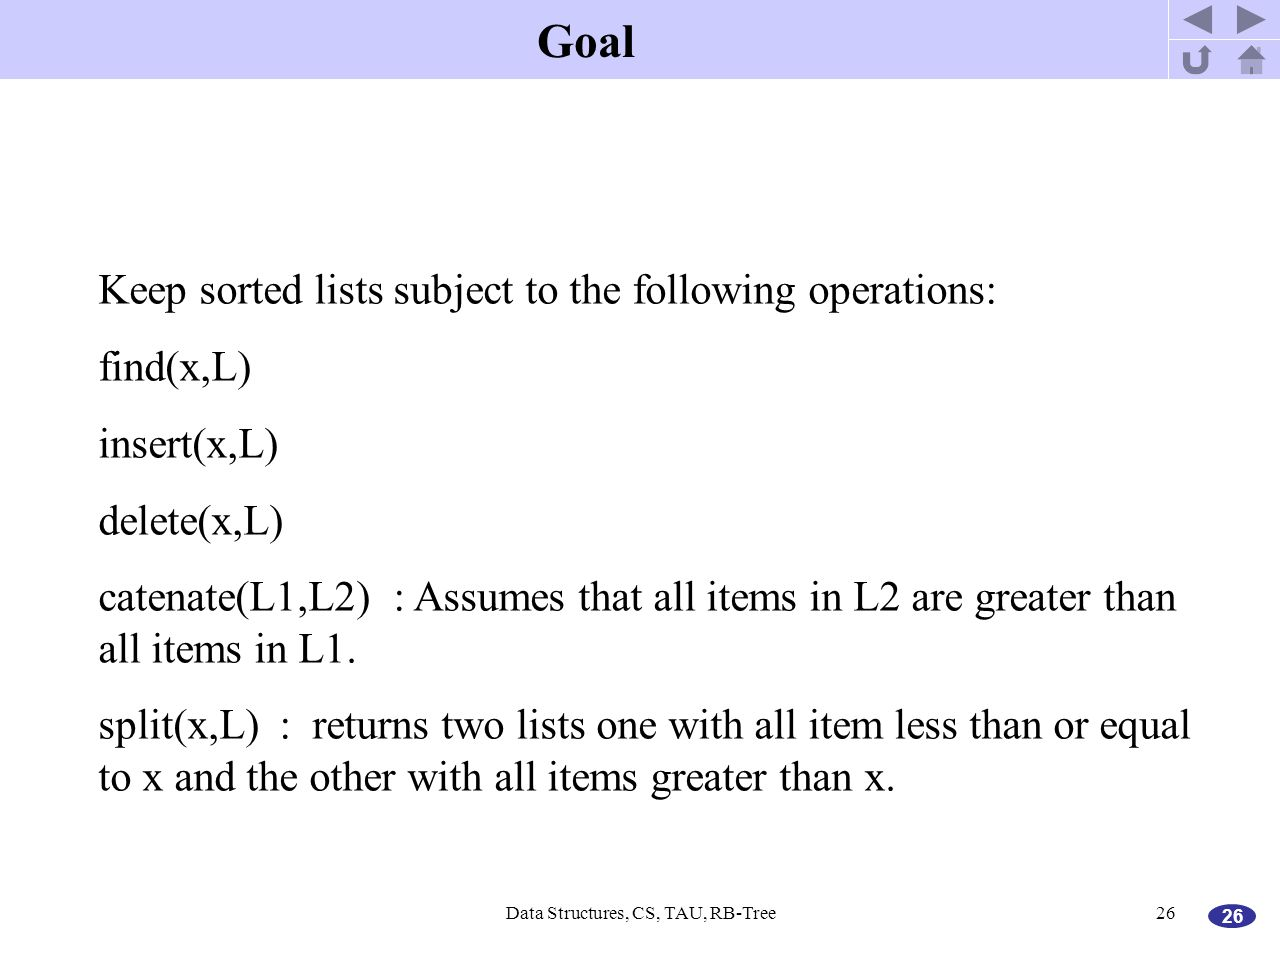 26 Data Structures, CS, TAU, RB-Tree26 Goal Keep sorted lists subject to the following operations: find(x,L) insert(x,L) delete(x,L) catenate(L1,L2) :